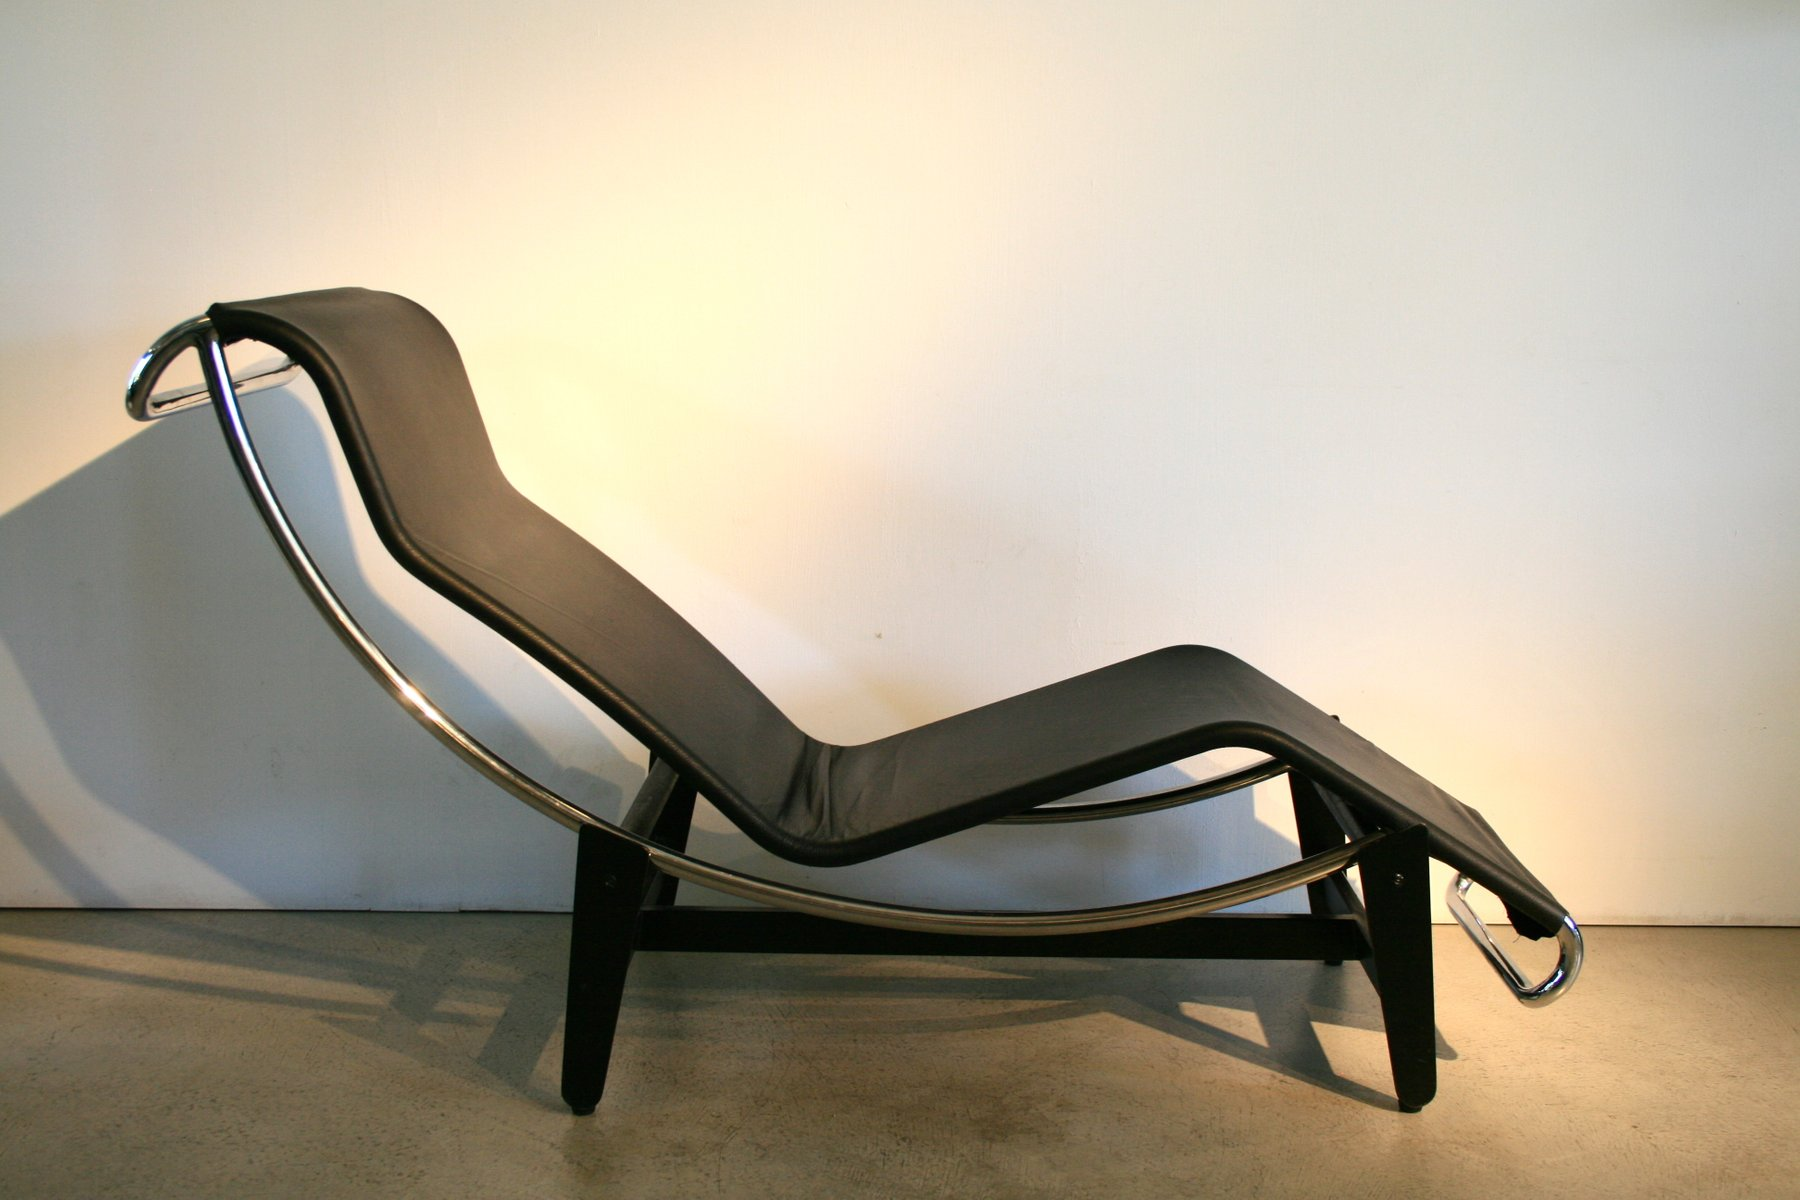 Le corbusier chair vintage - Vintage Lc4 Lounge Chair By Le Corbusier For Wohnbedarf 1950s